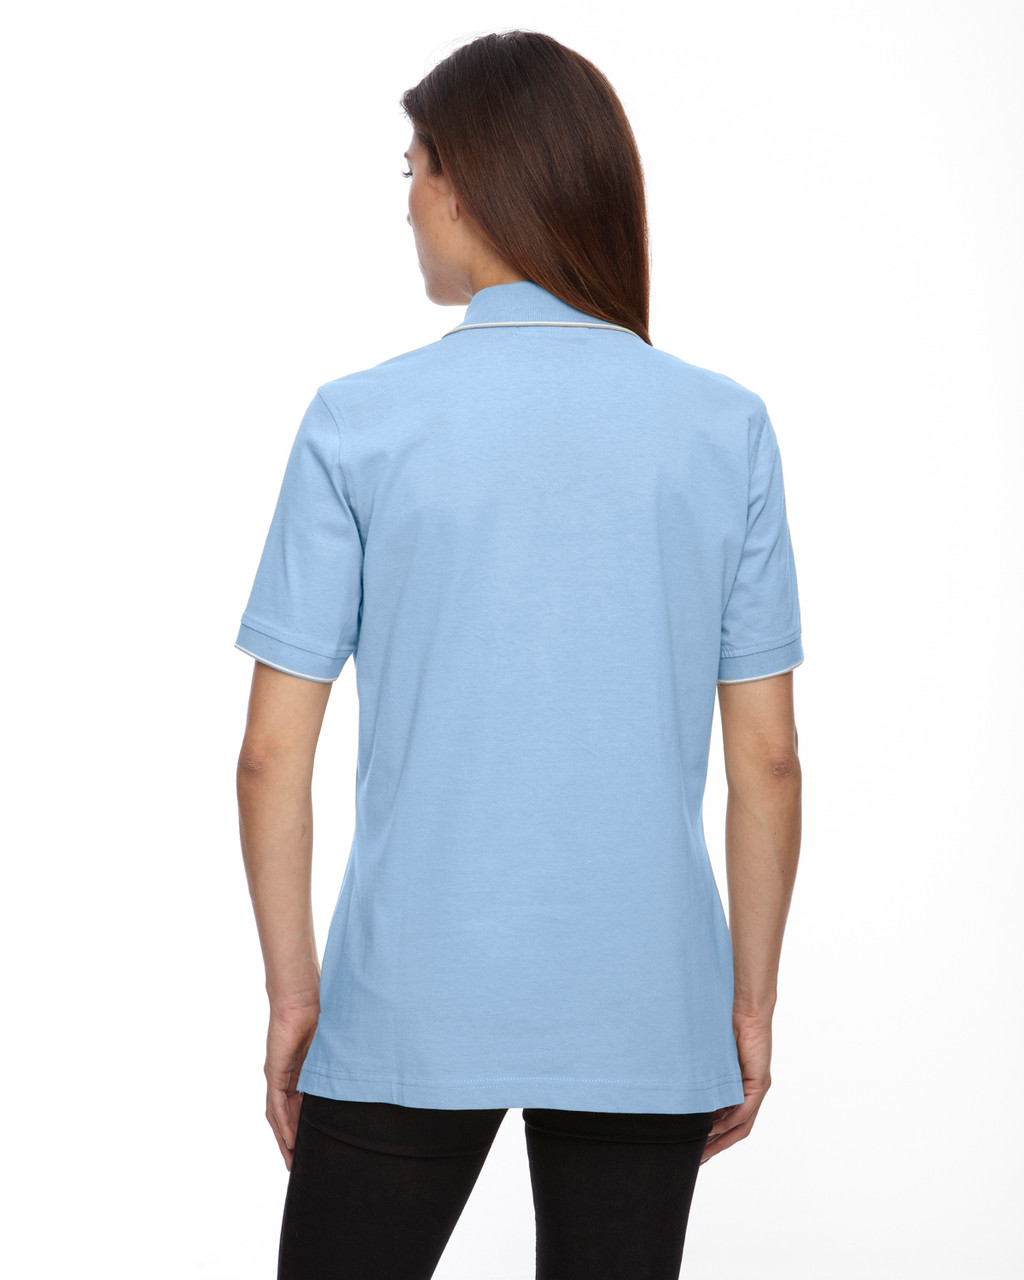 Powder Blue - Back, 75009 Extreme Ladies' Cotton Jersey Polo | BlankClothing.ca